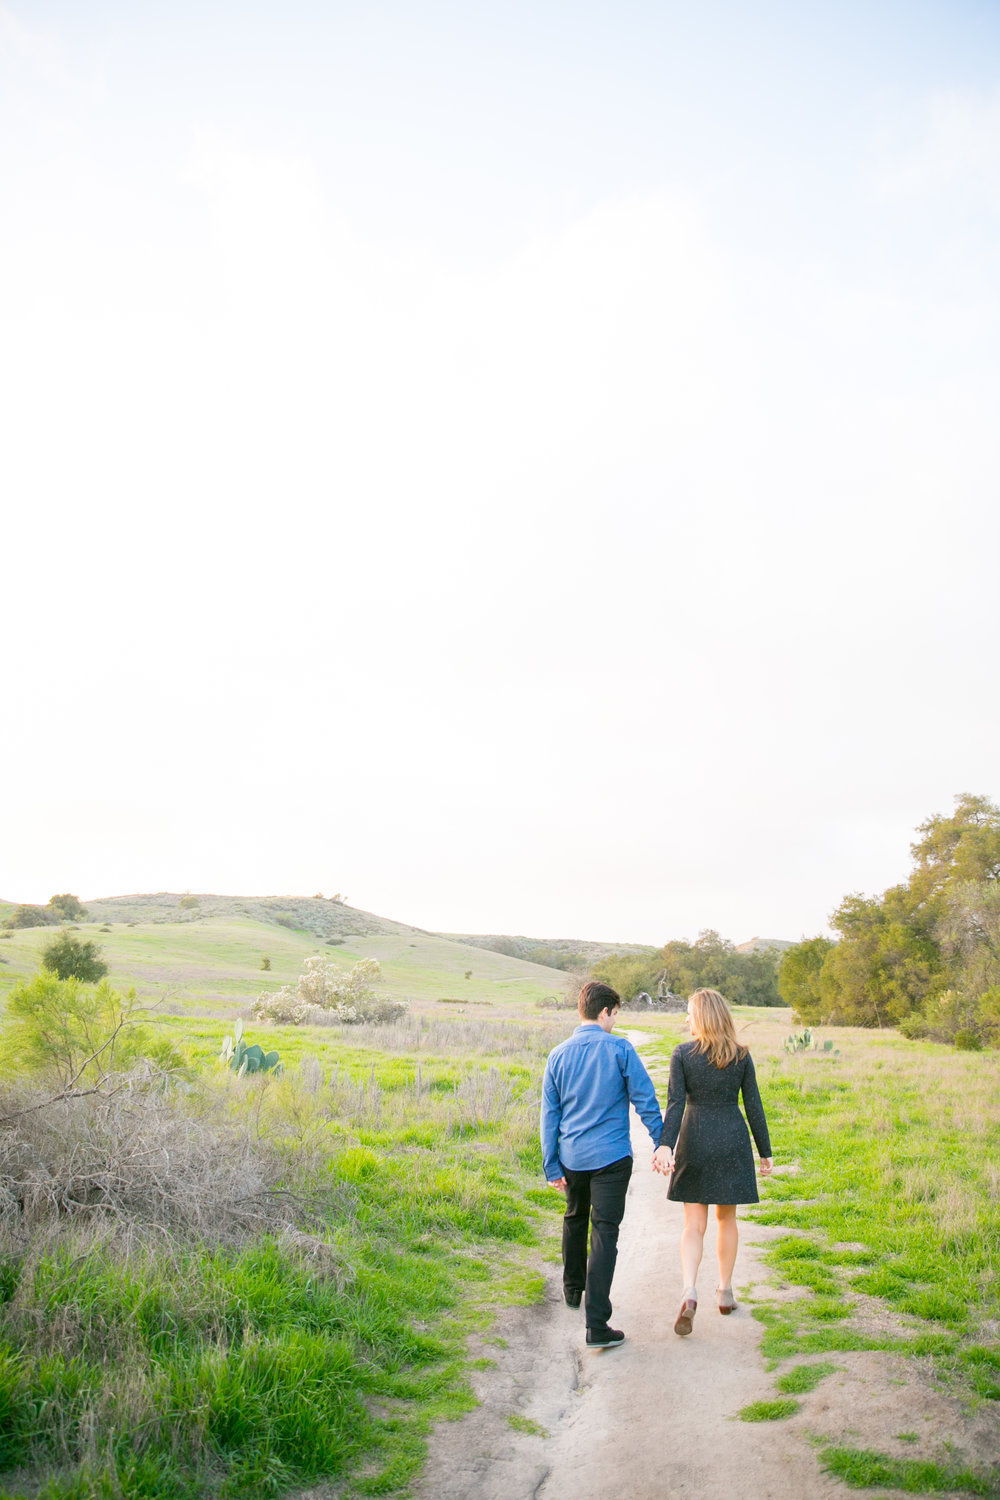 "<a href=""/megan-jon""><span style=""color:white;"">Megan & Jon</span> →<strong>Engagement Session</strong></a>"